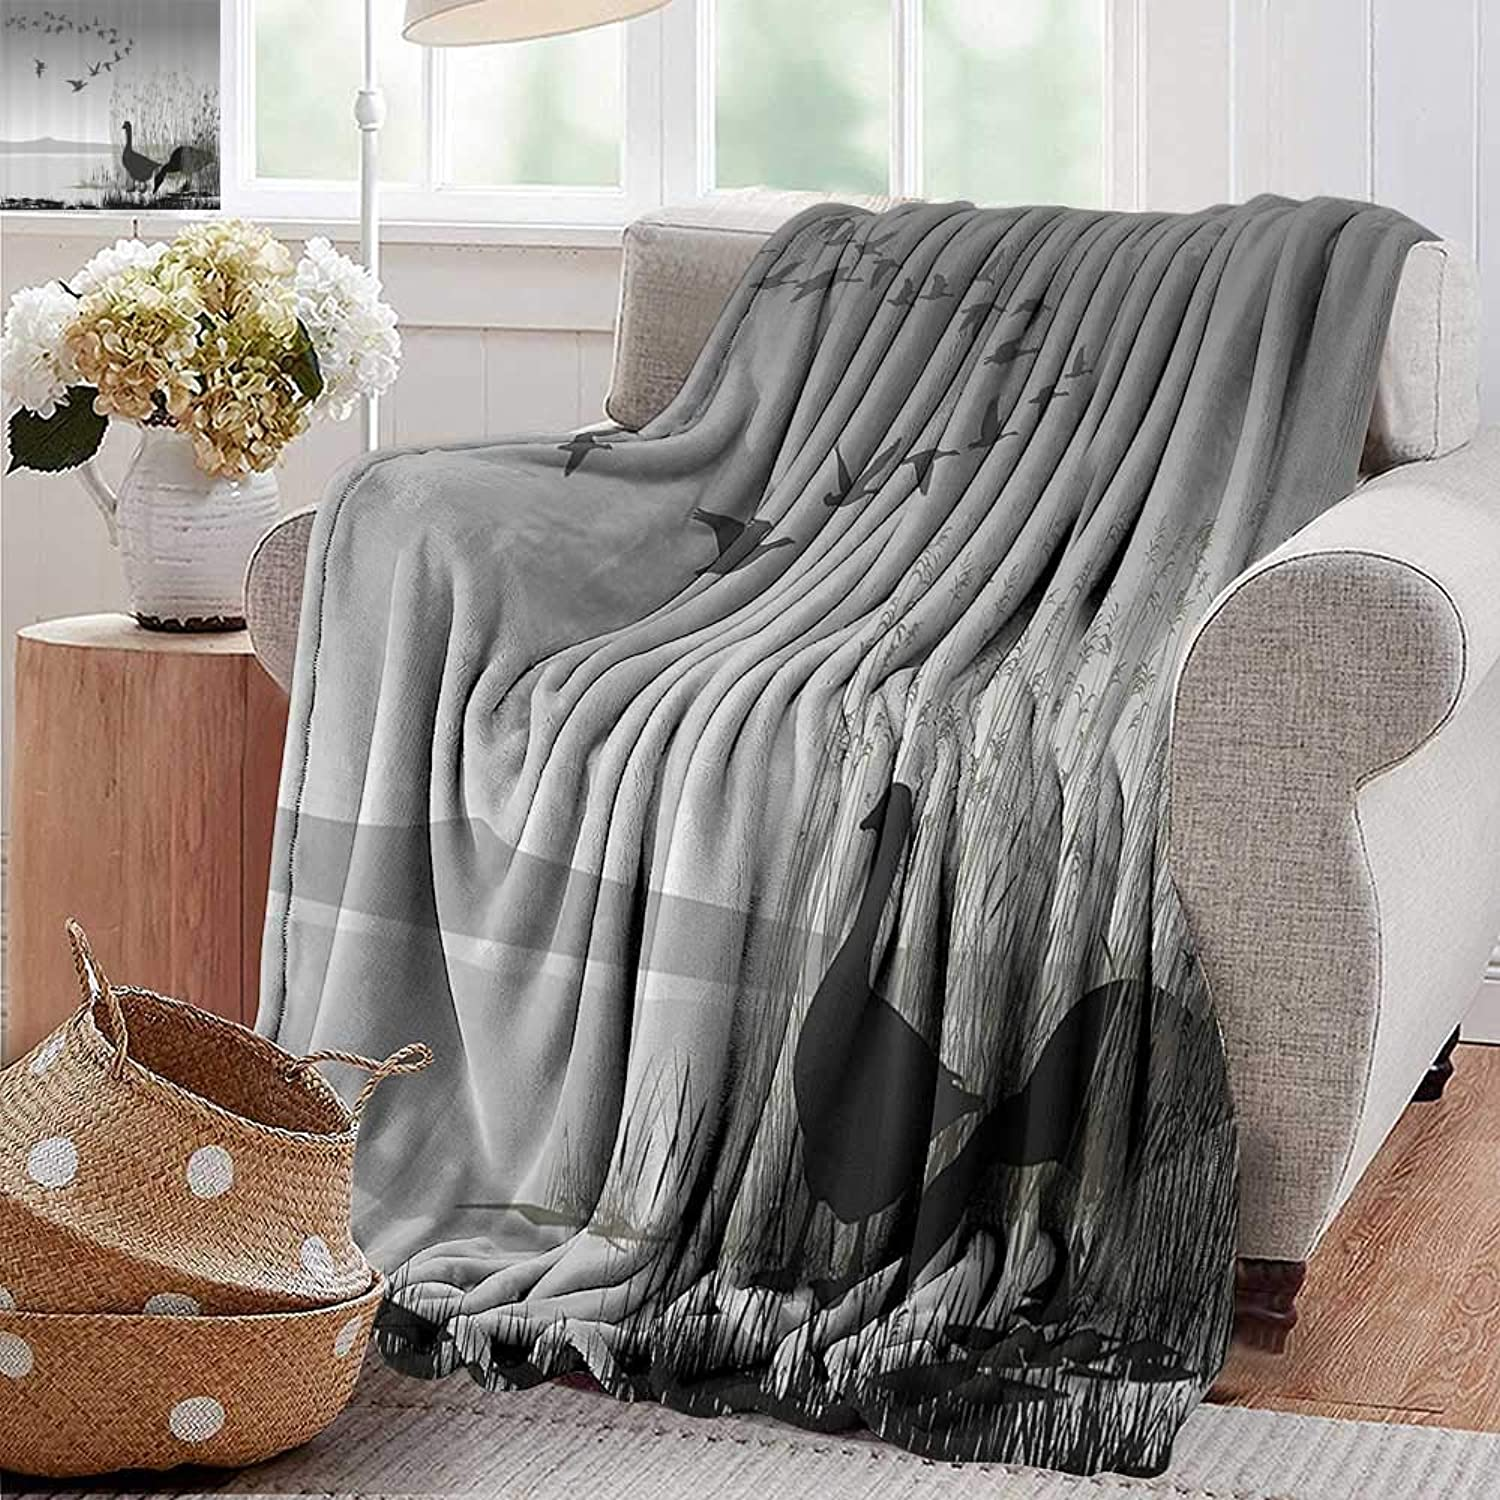 PearlRolan Bed Blanket,Wildlife Decor,Silhouette of a Geese by Frozen Lake Flying Autumn Birds in The Sky Scene,bluee Black,for Bed & Couch Sofa Easy Care 35 x60